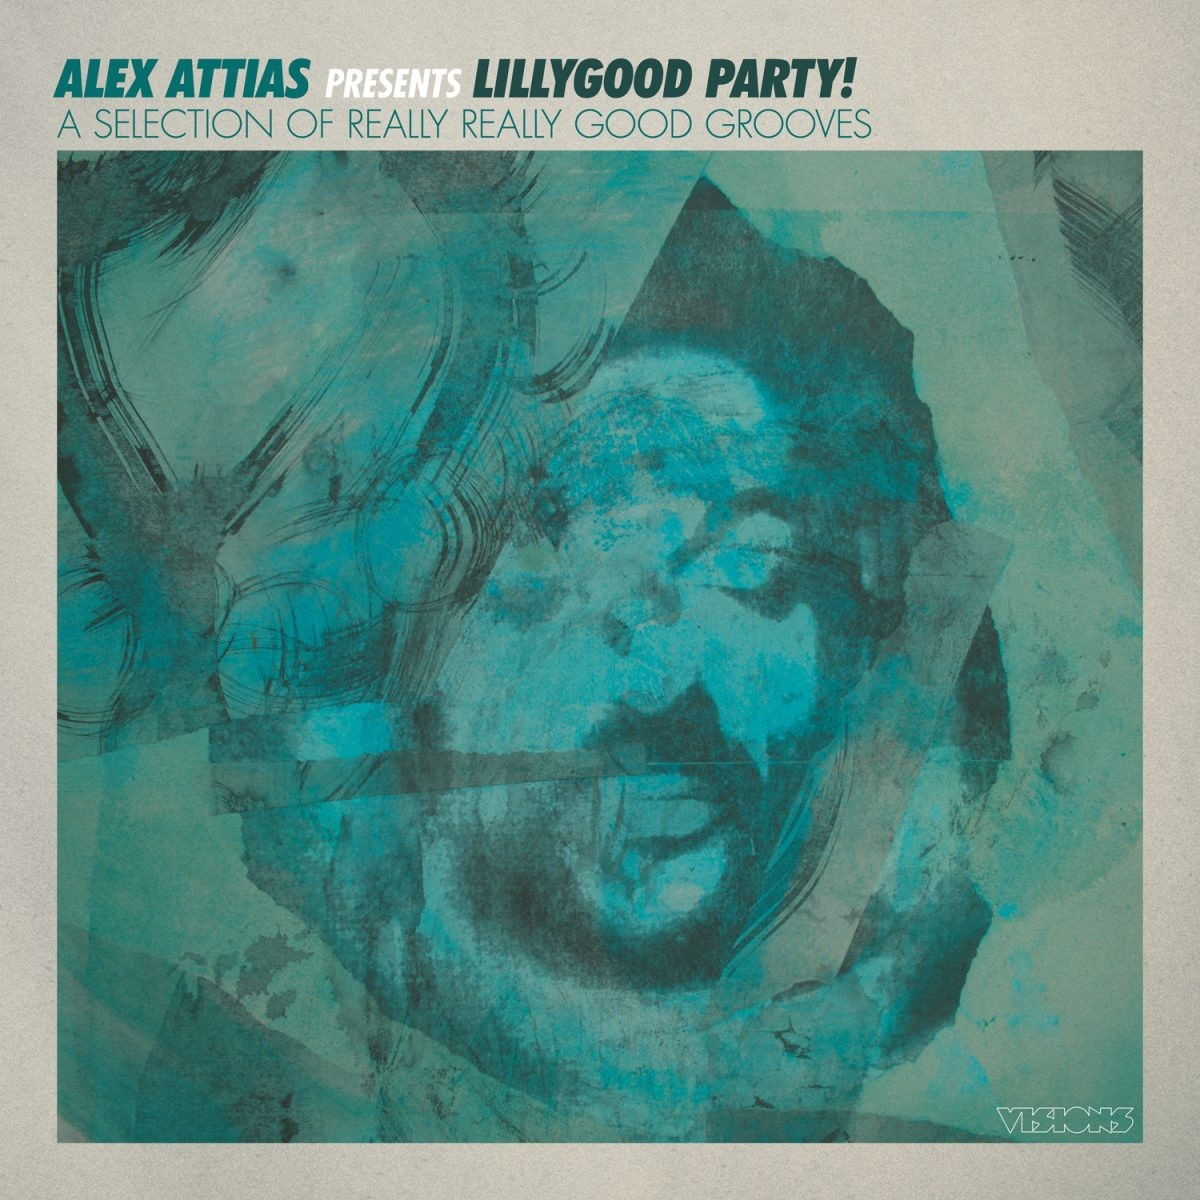 Alex Attias Presents Lillygood Party